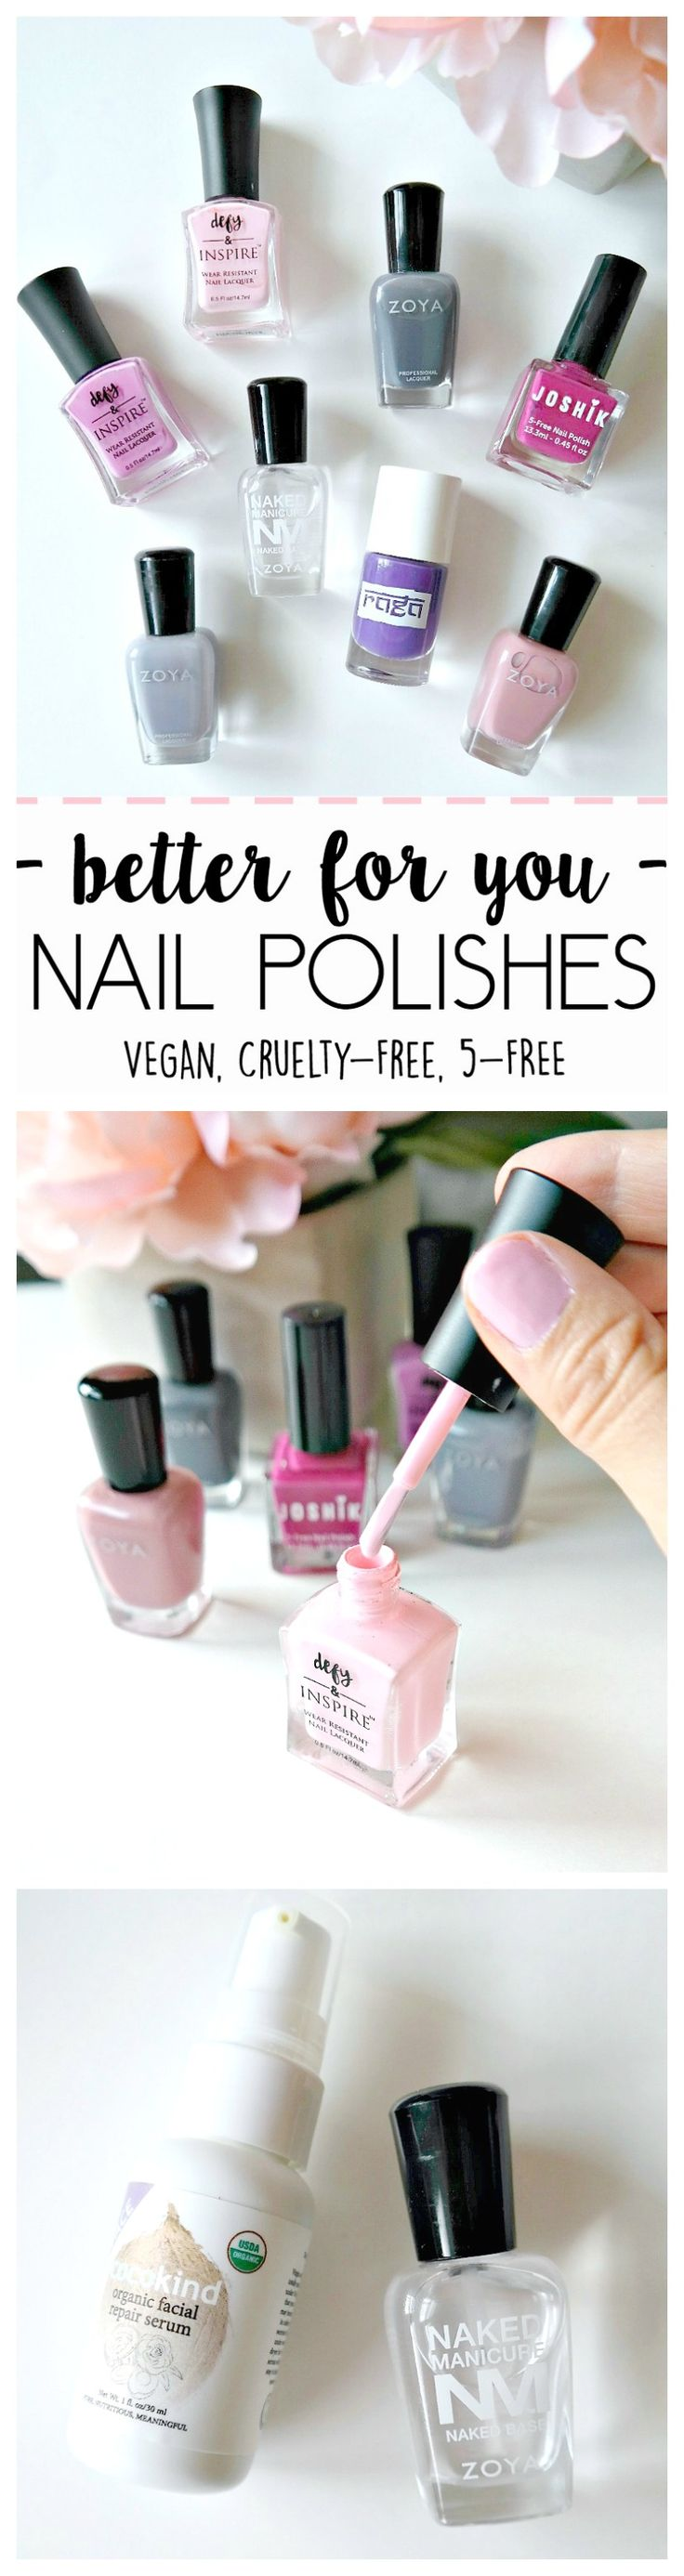 12 best Nails Infographics images on Pinterest | Nail art ideas ...